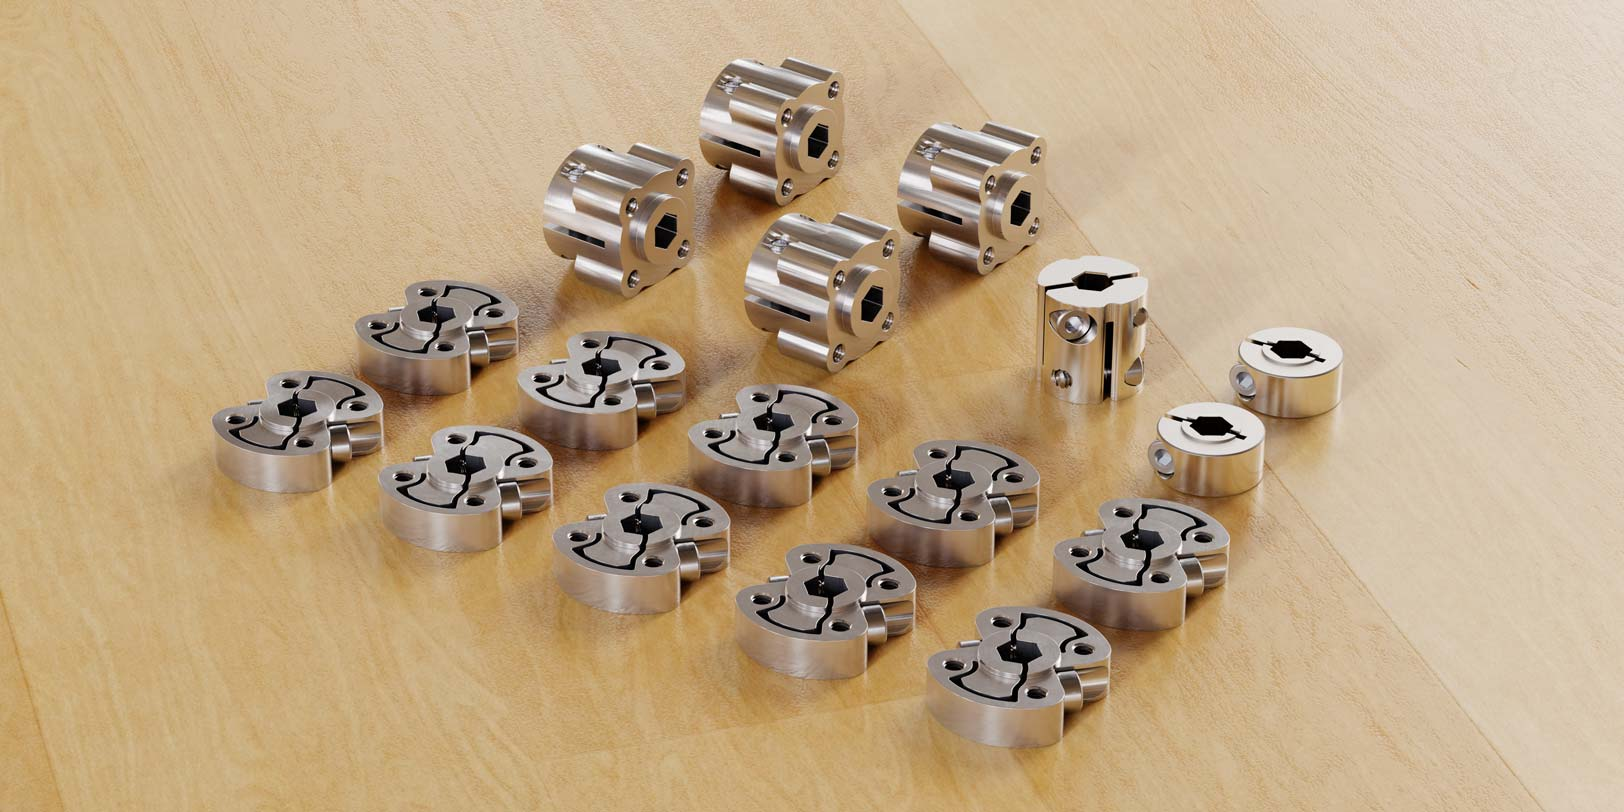 8mm-kit-hubs-couplers-and-collars-21-22-1624px.jpg